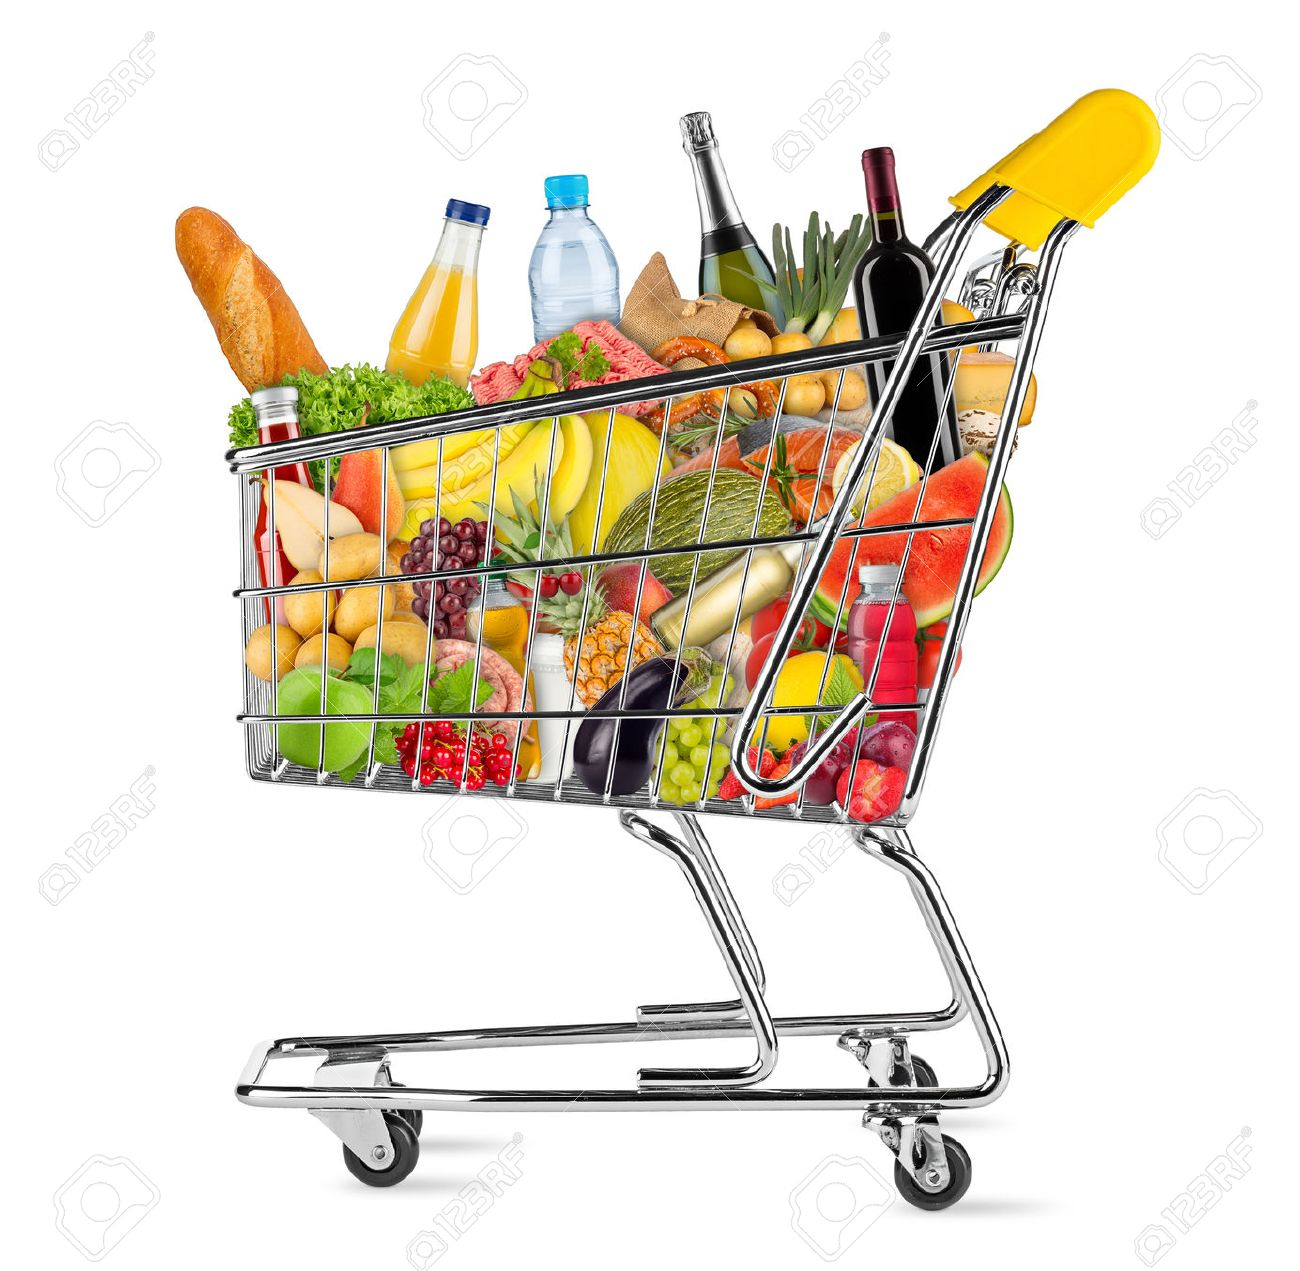 yellow shopping cart filled with various food and beverages isolated on white background - 61038875